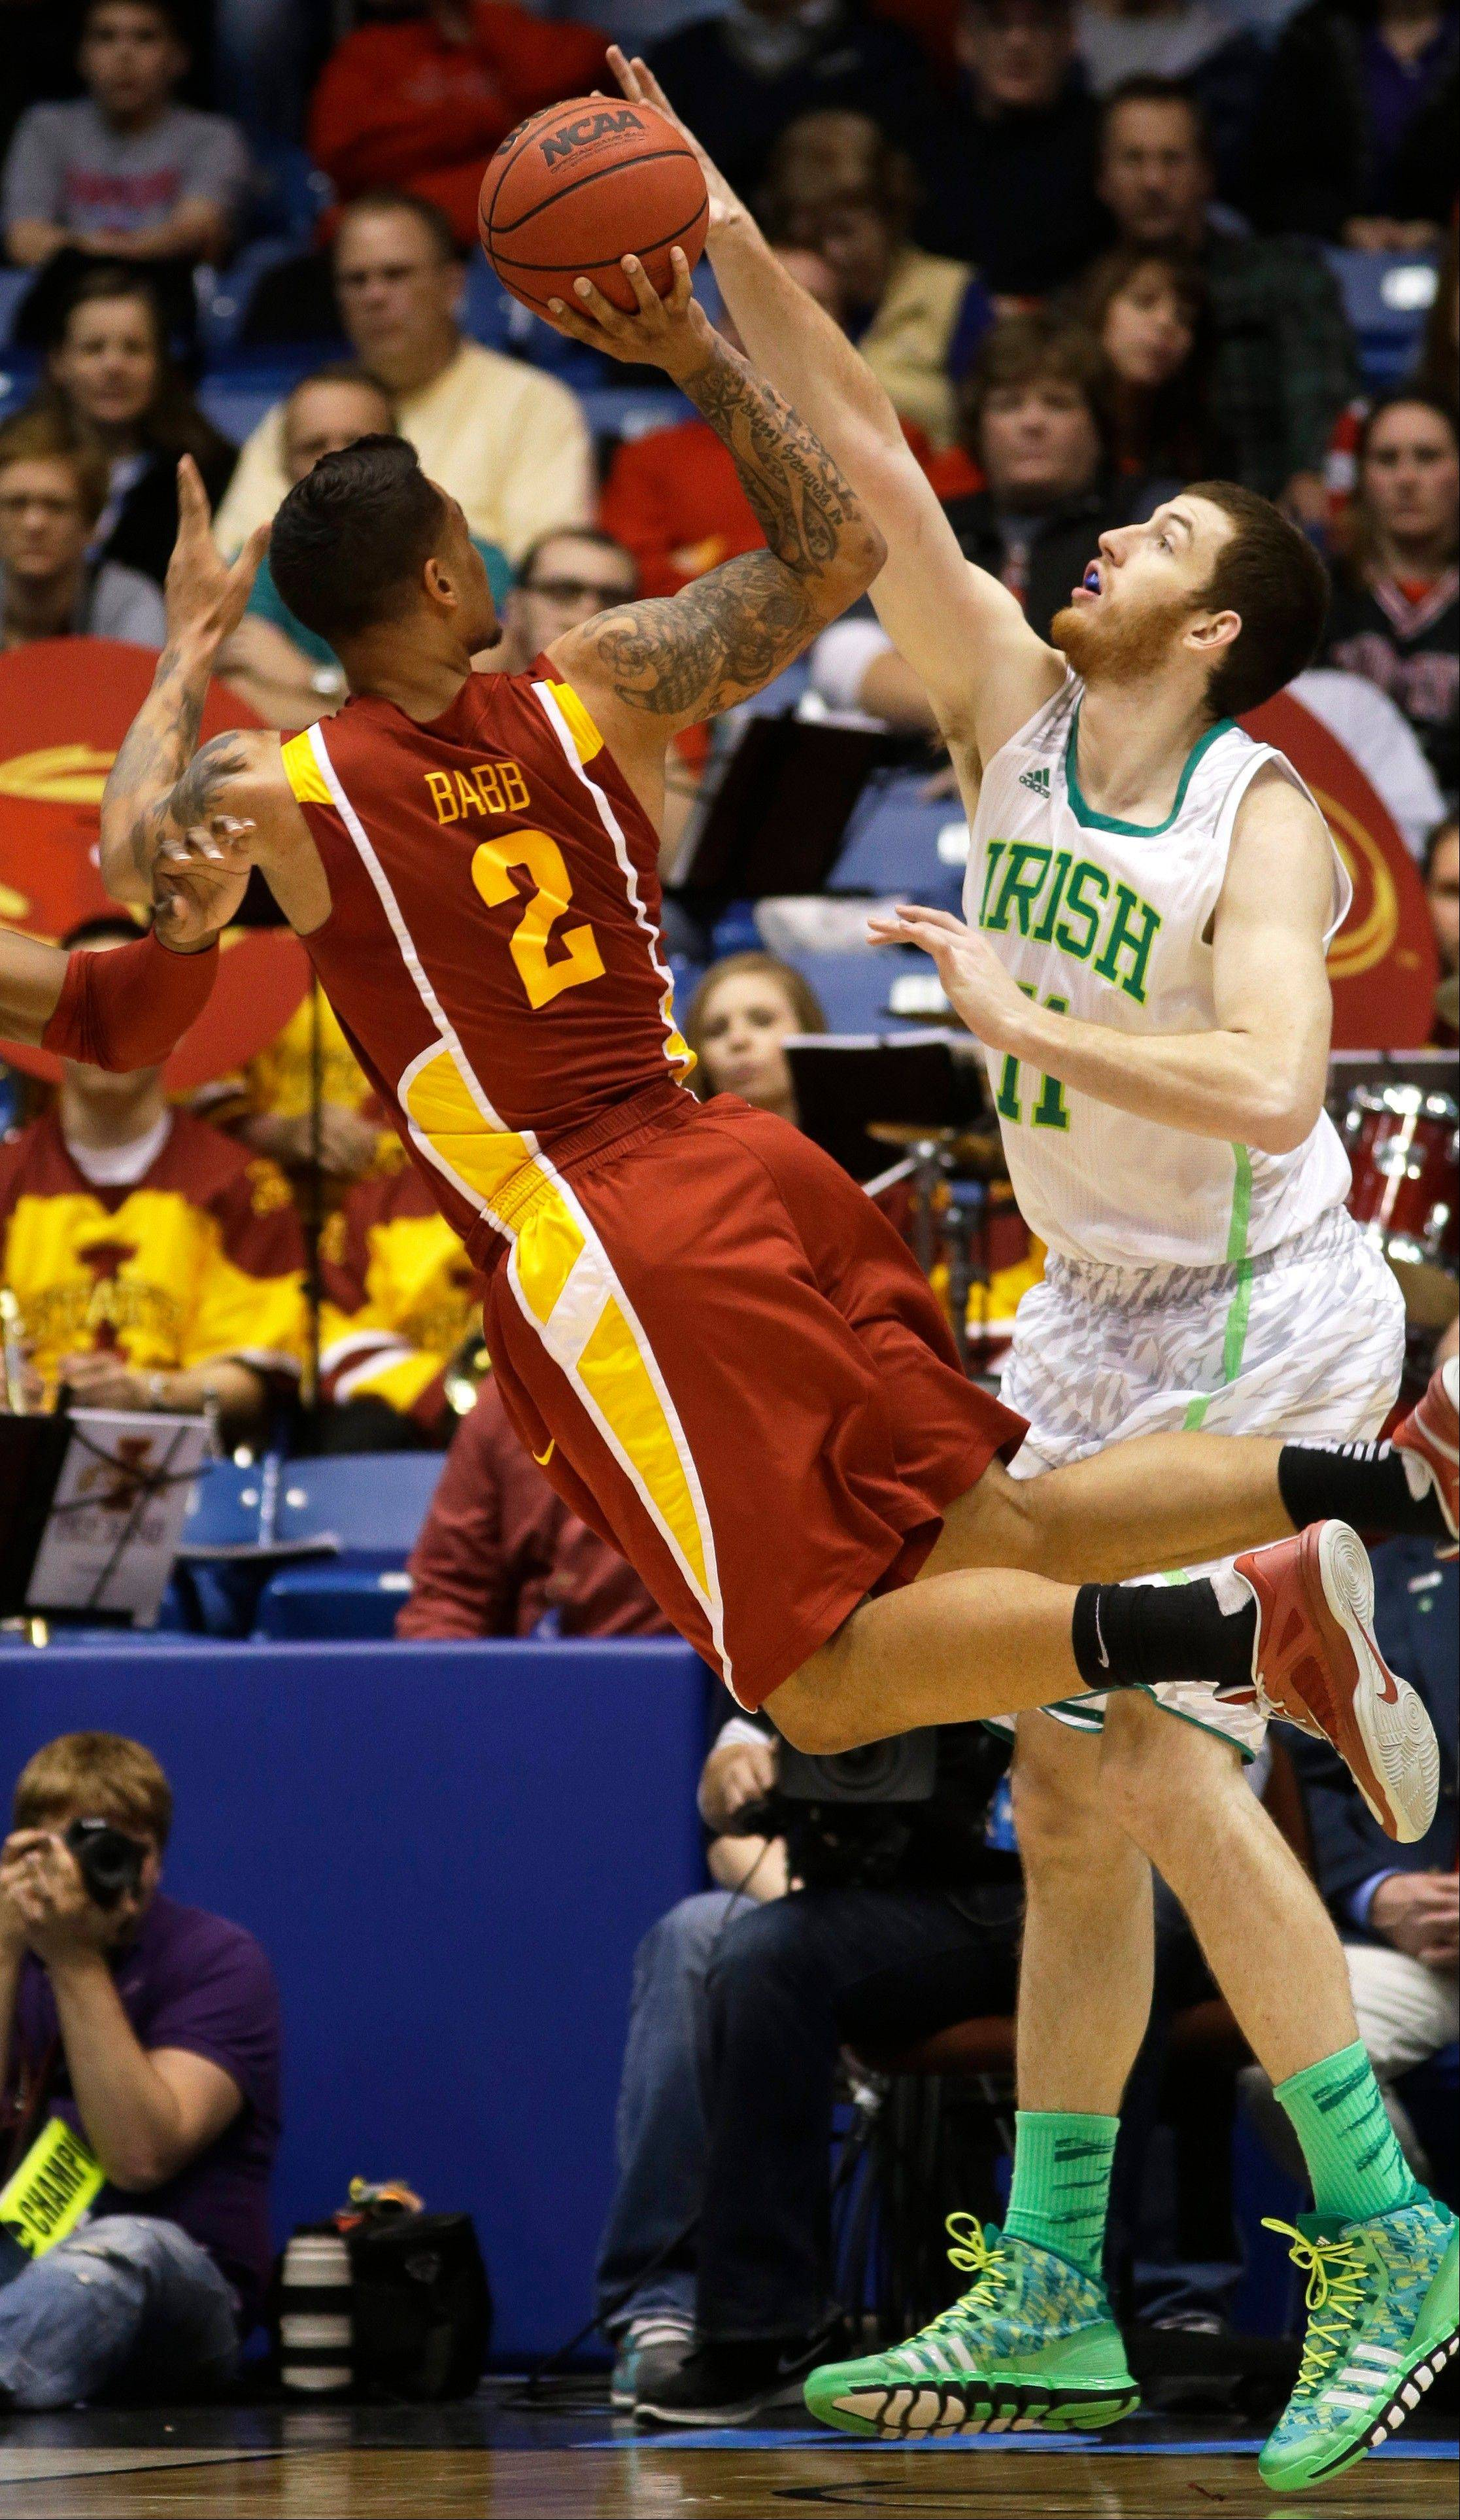 Iowa State guard Chris Babb (2) shoots against Notre Dame center Garrick Sherman (11) in the second half of a second-round game at the NCAA college basketball tournament on Friday, March 22, 2013, in Dayton, Ohio.